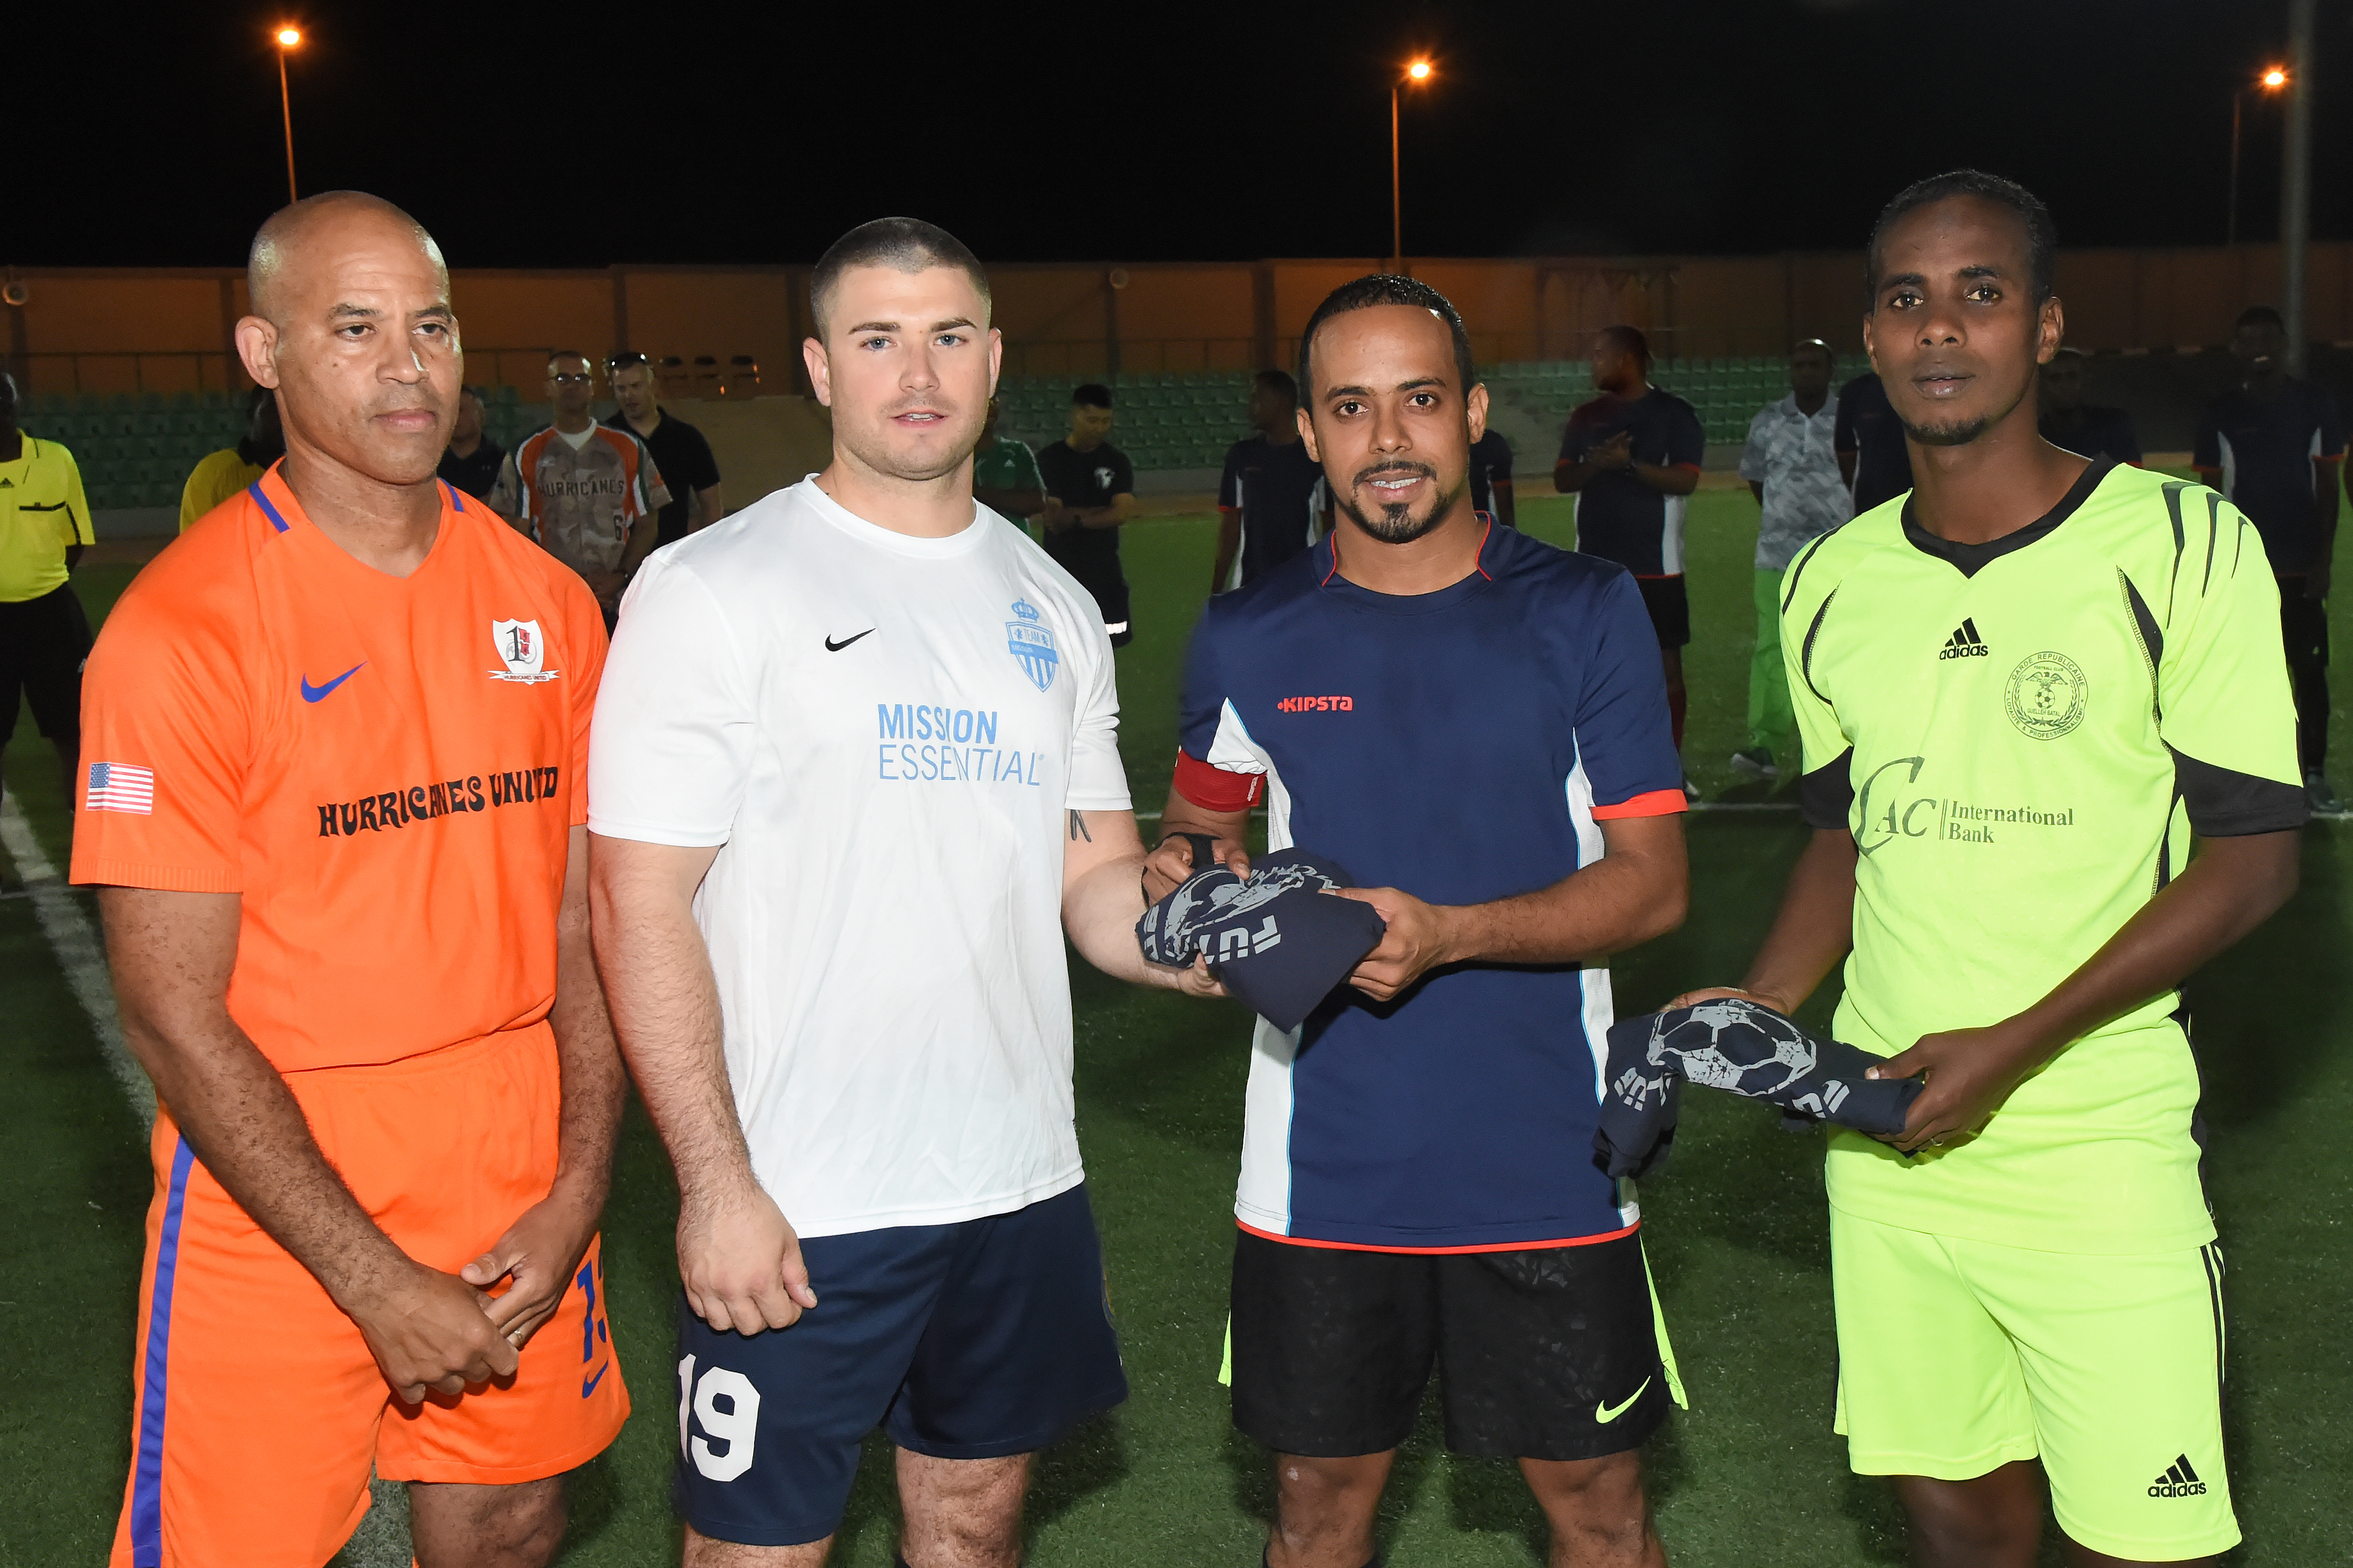 Teams comprised of U.S. military members stationed at Camp Lemonnier, and members of the Djibouti Armed Forces (FAD) Republican Guard exchange gifts prior to the first in a series of friendly soccer matches at the Balbala Sports Complex in Djibouti City, Jan. 1, 2017. Through the organization of regular sporting events, the U.S. service members strive to strengthen the relationship with their FAD counterparts as well as with partner nation militaries operating in the Horn of Africa.  (U.S. Air National Guard photo by Master Sgt. Paul Gorman)